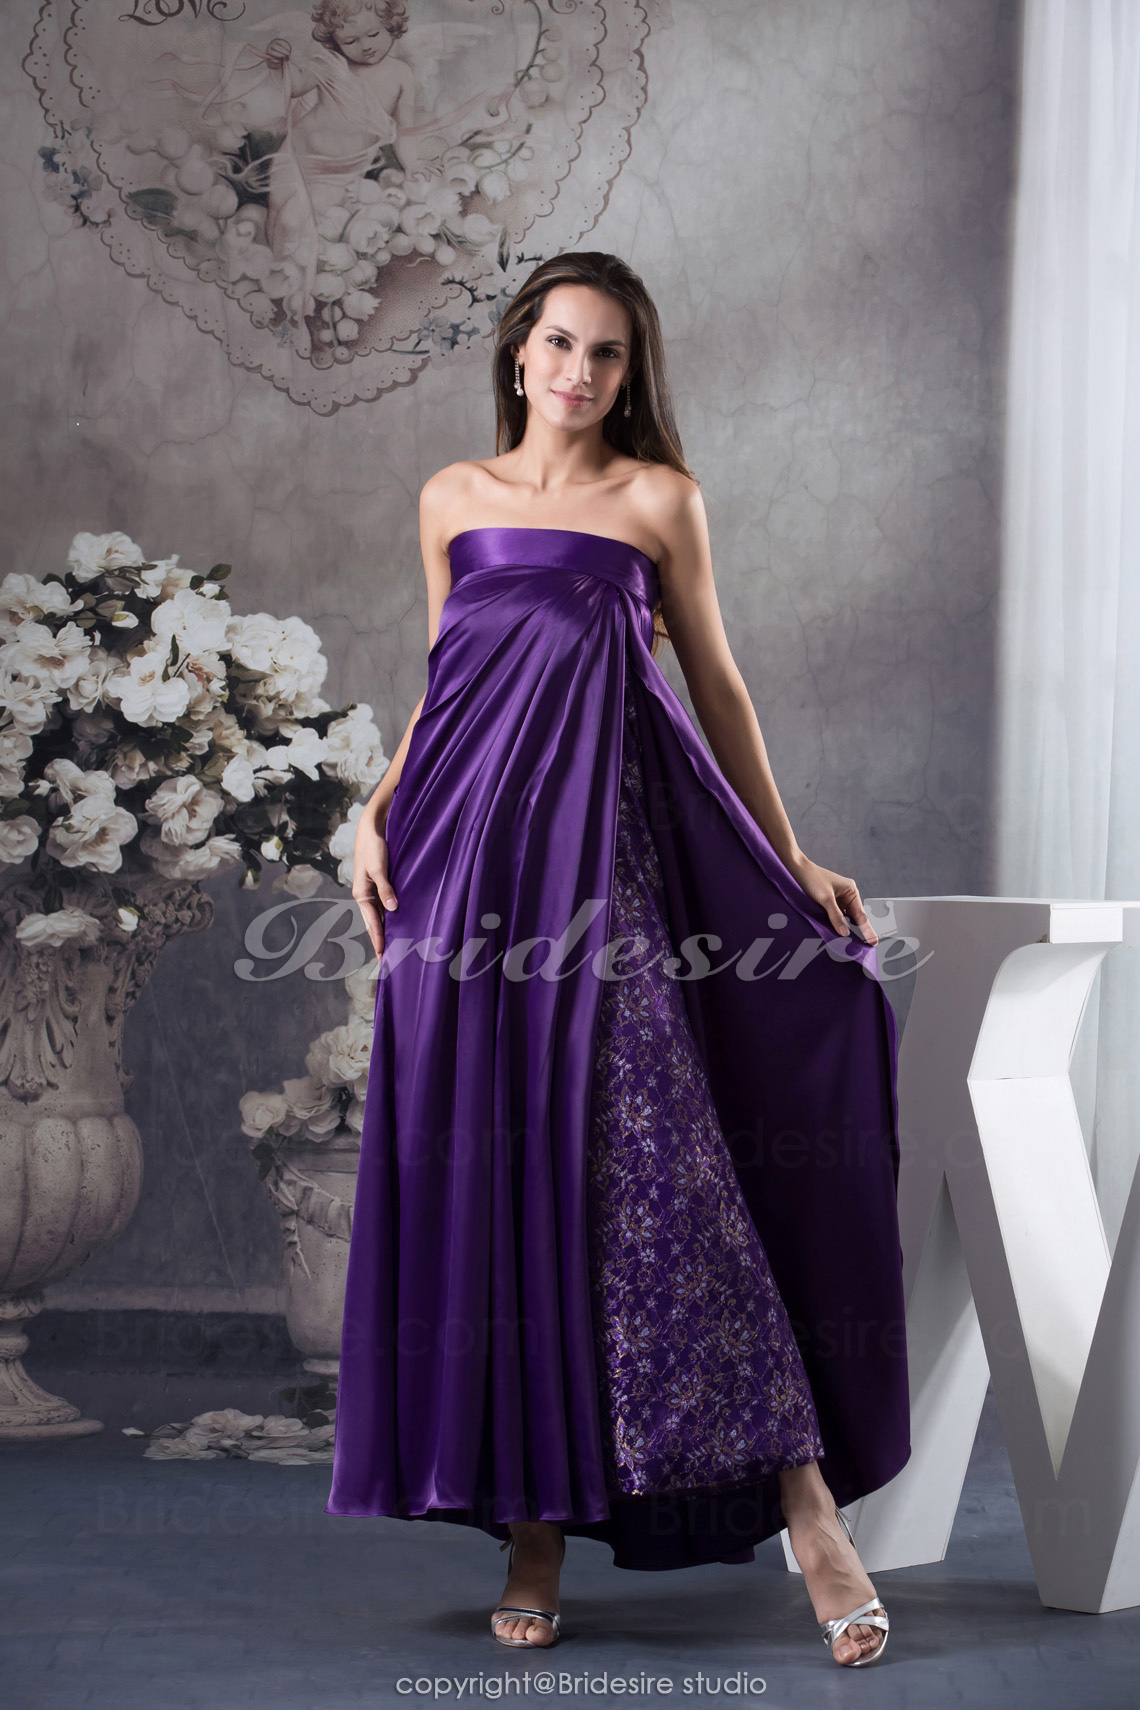 Sheath/Column Strapless Ankle-length Sleeveless Satin Dress